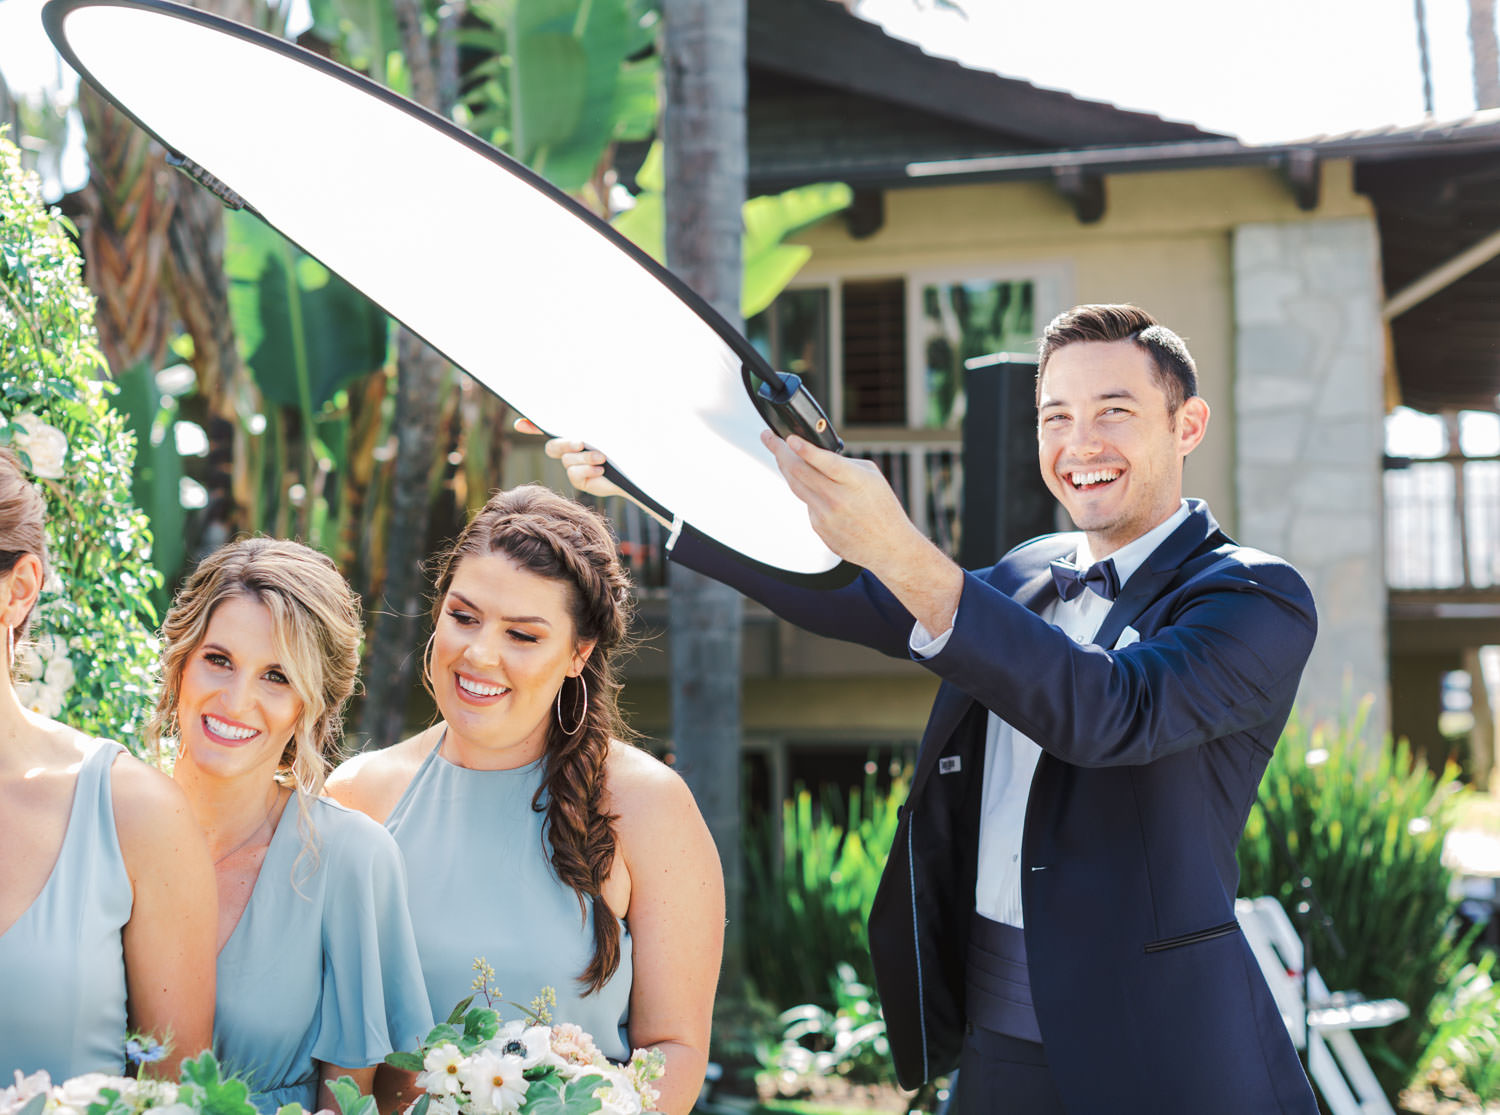 Groomsman holding diffuser for bridal party photos. Cute behind the scenes wedding moments by Cavin Elizabeth Photography.